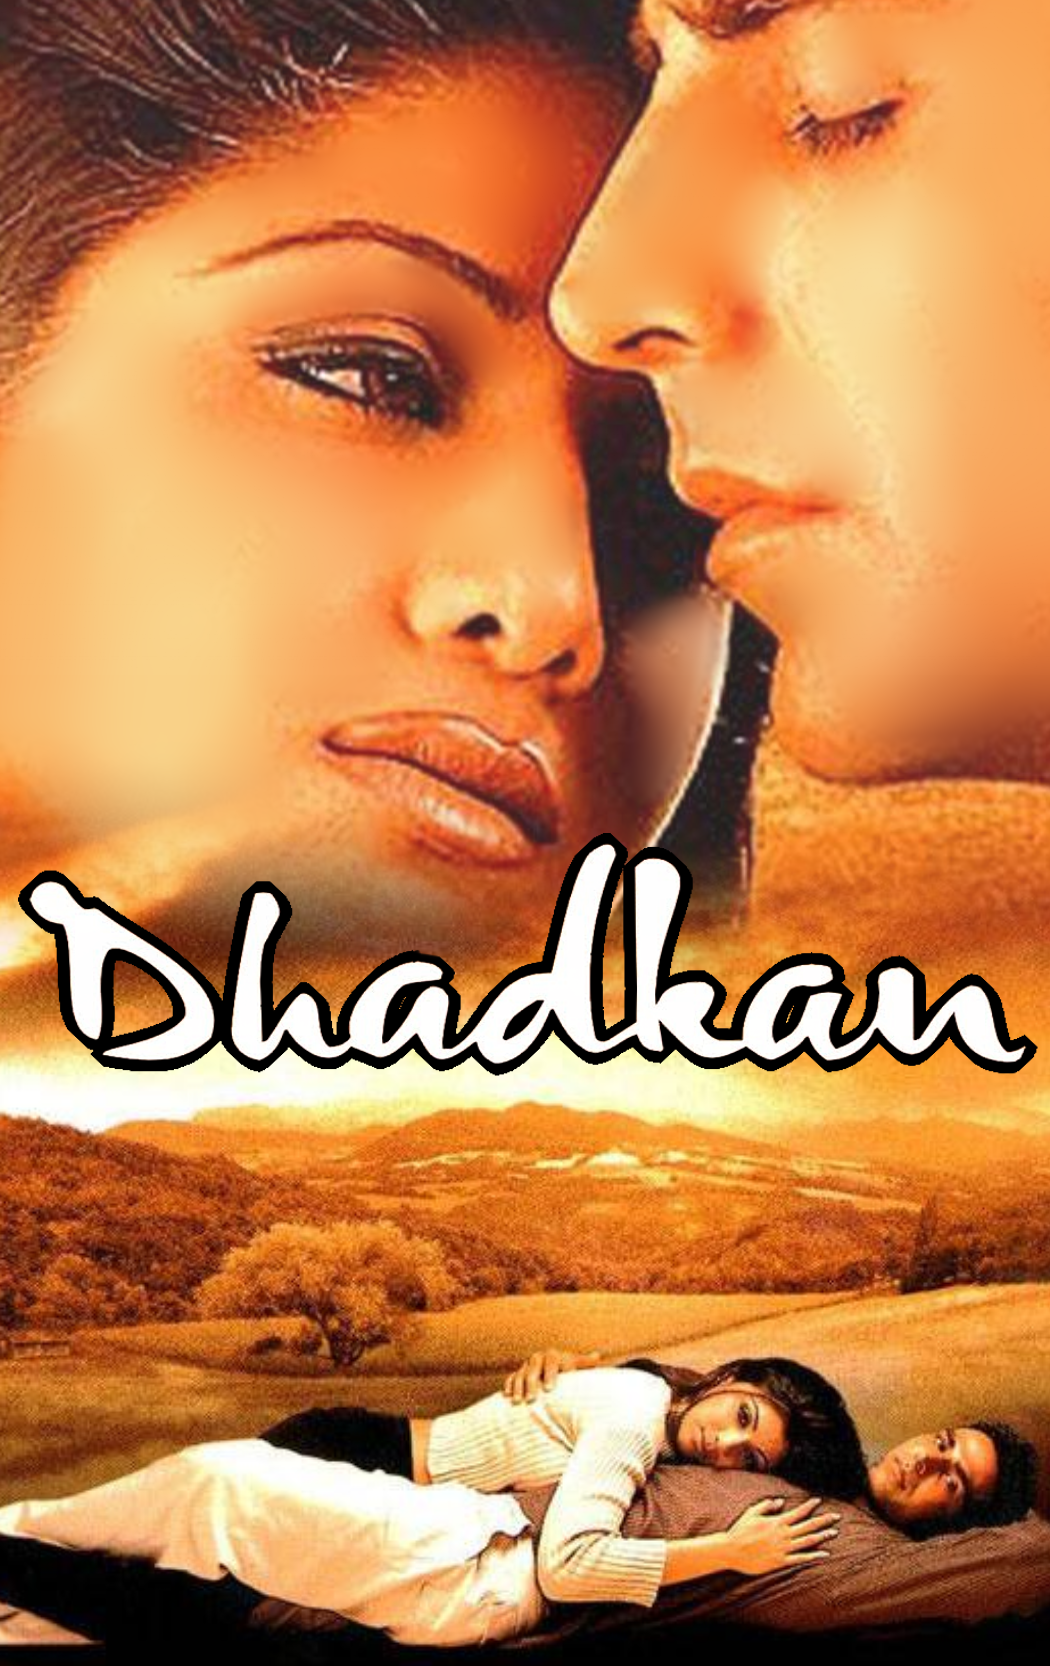 dhadkan movie free download in hd